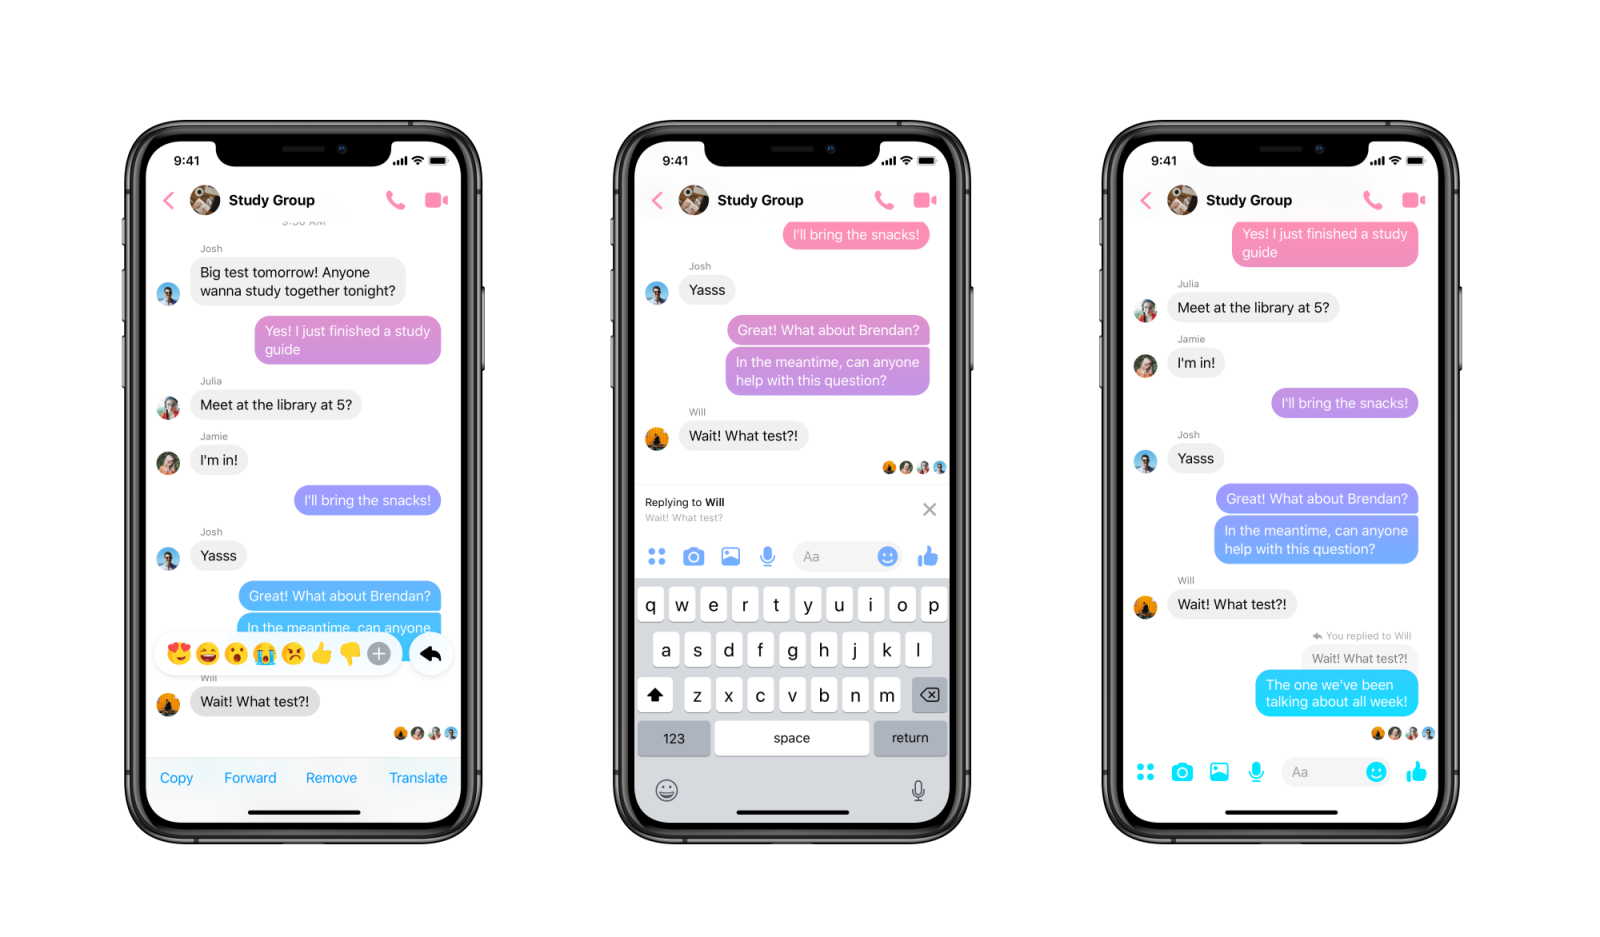 Facebook Messenger adds new threaded replies feature for